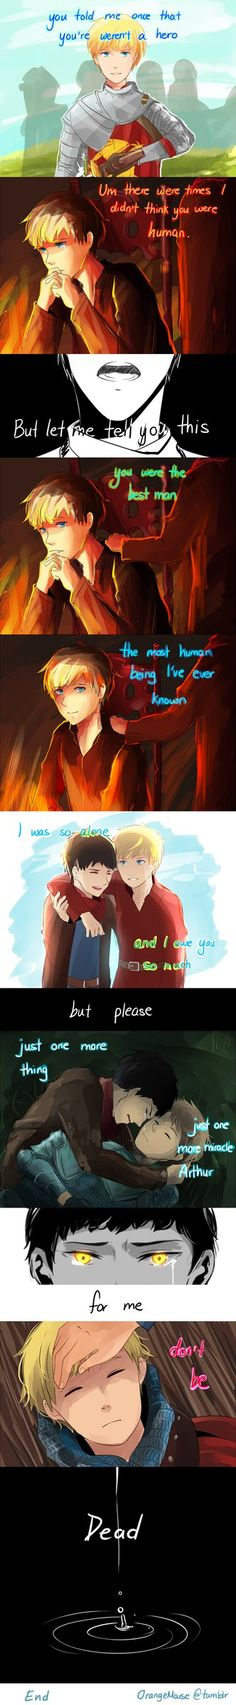 merlin x bbc sherlock mini comic because this show ripped my heart out and smashed it into a. One more miracle merlin/sherlock Colin Morgan, Bradley James, Fandoms, Merlin Serie, Sherlock Quotes, Merlin Quotes, Merlin Memes, Merlin Fandom, Merlin And Arthur